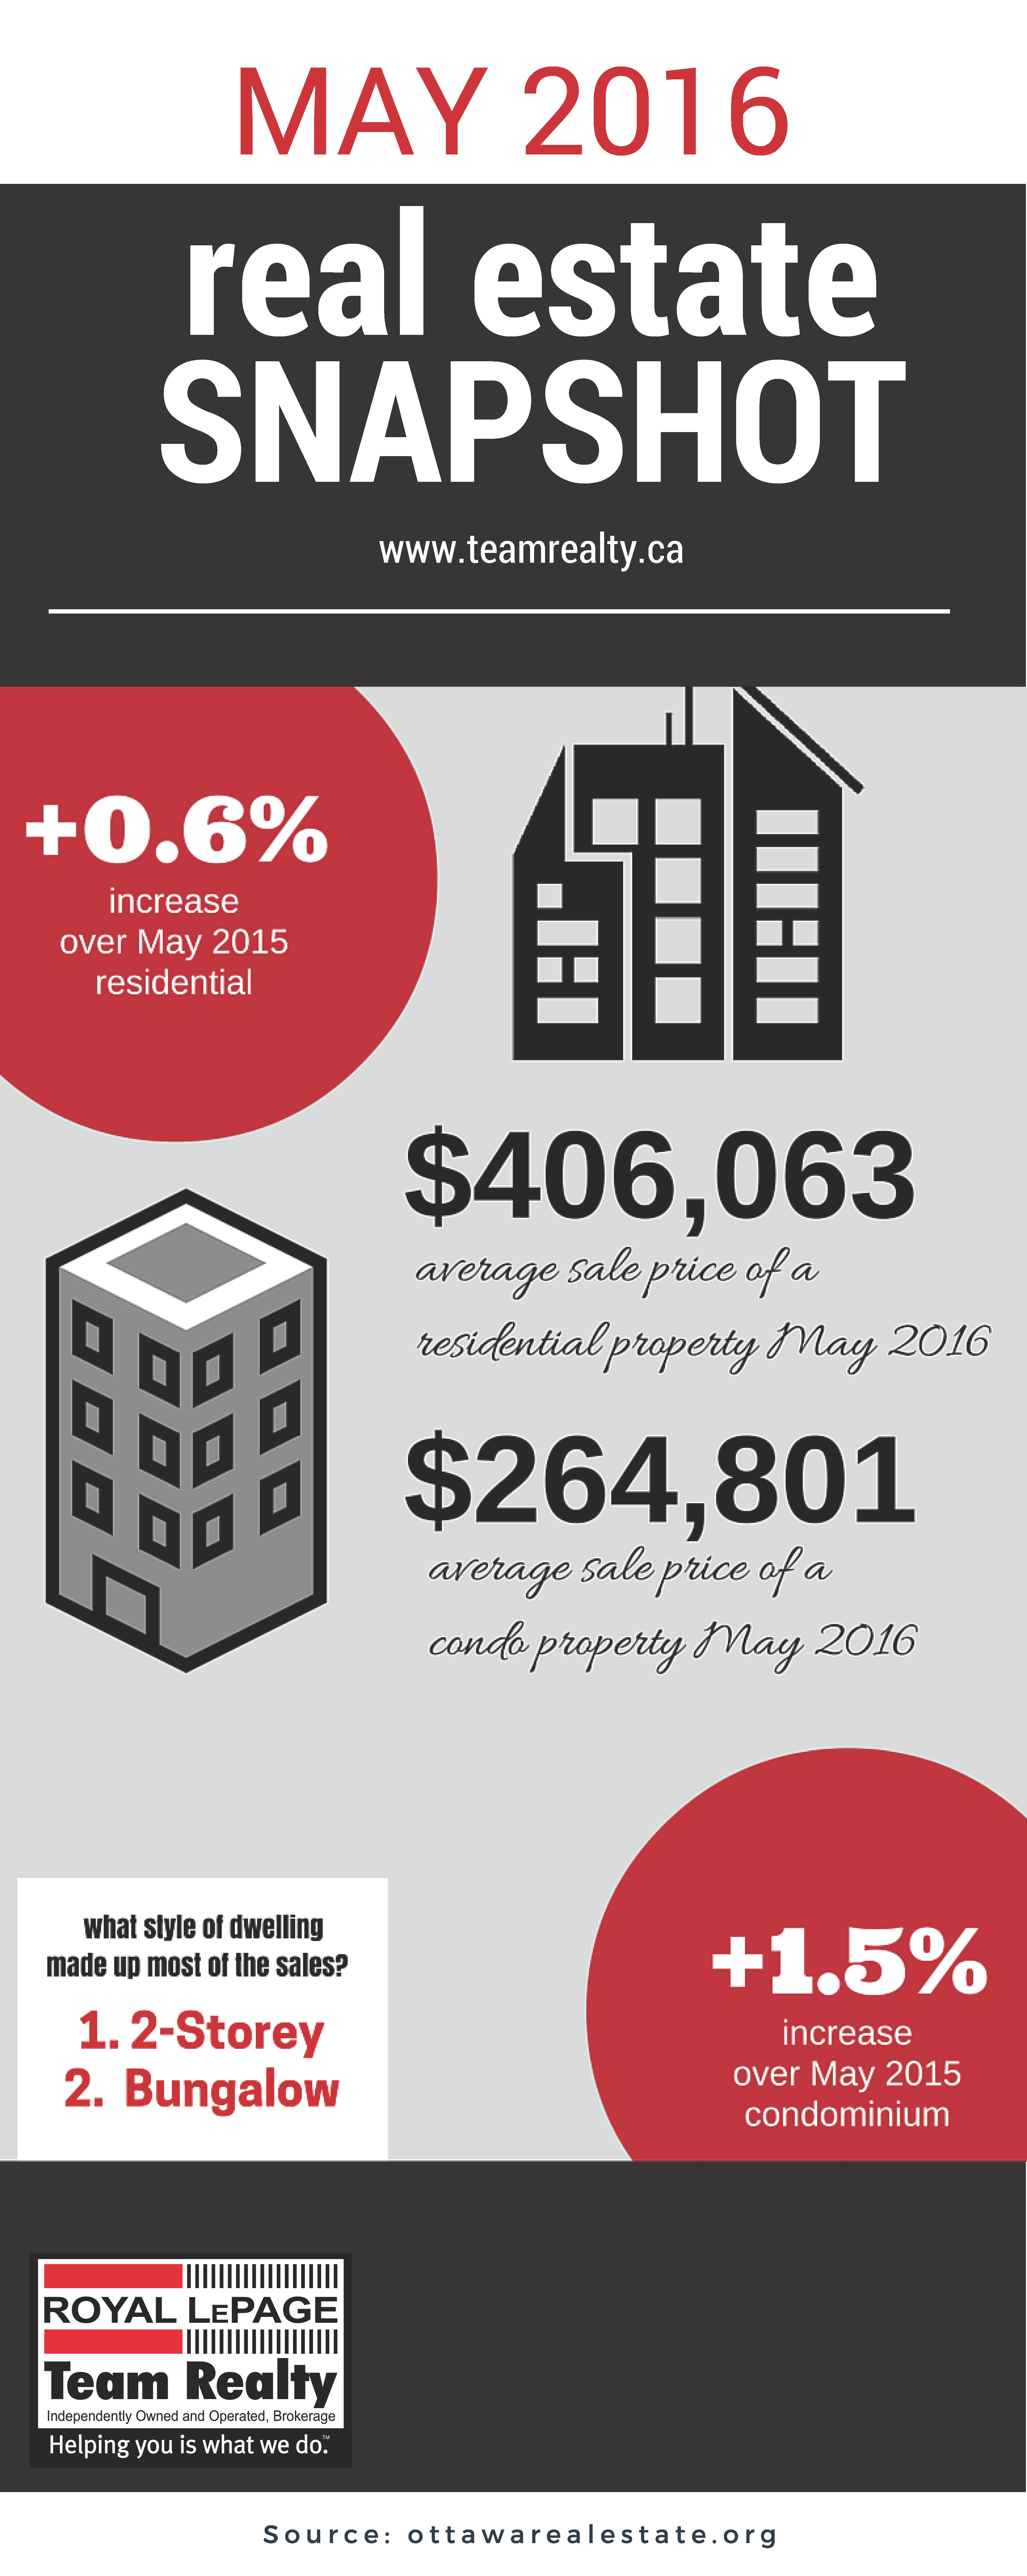 May real estate snapshot that shows how using stats graphics are interesting